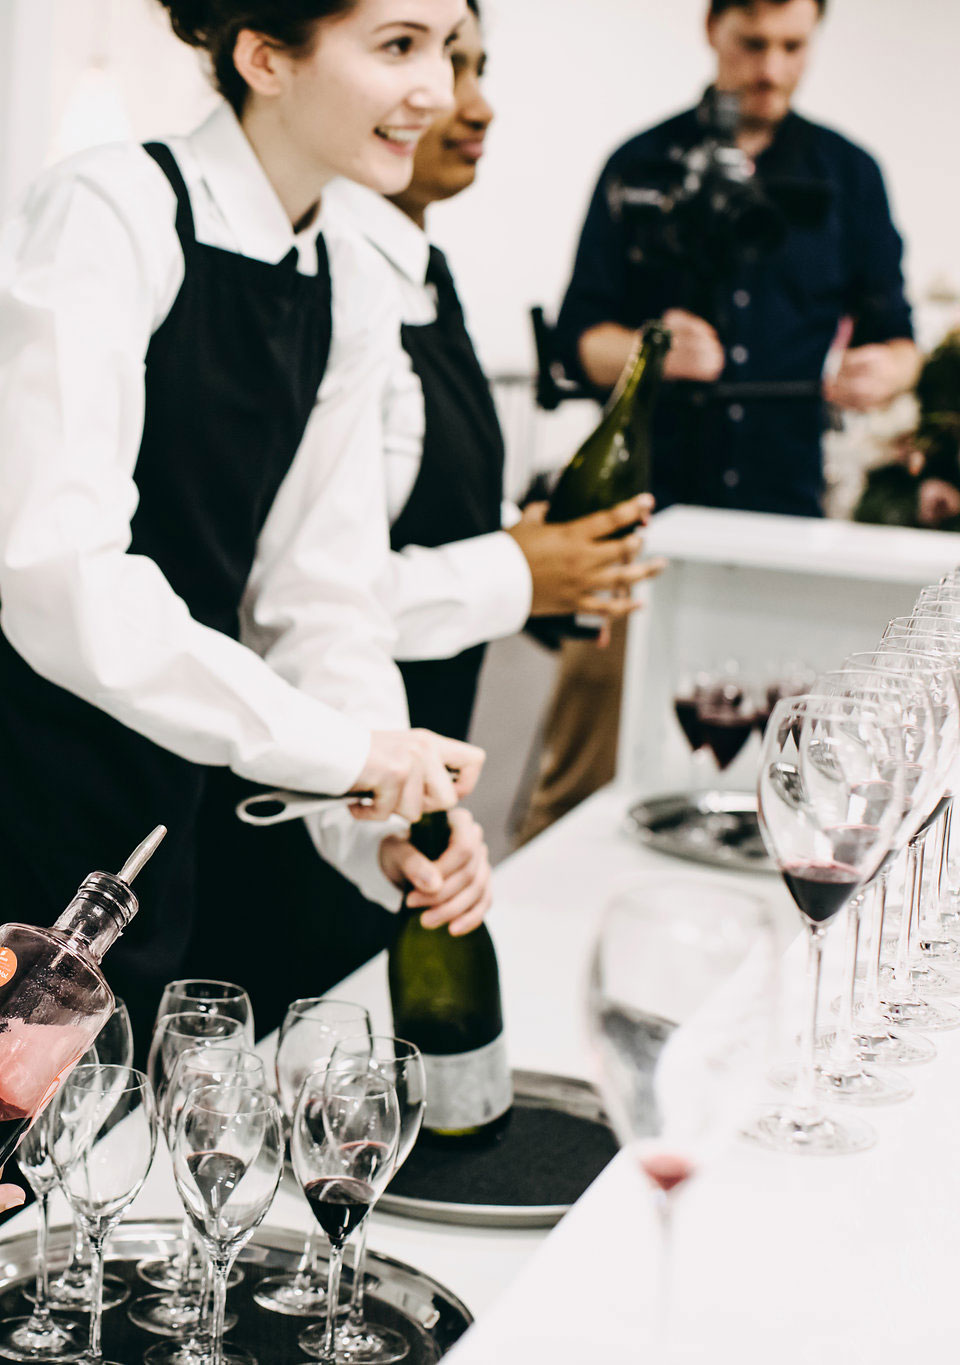 Caterer opening a bottle of wine at an event